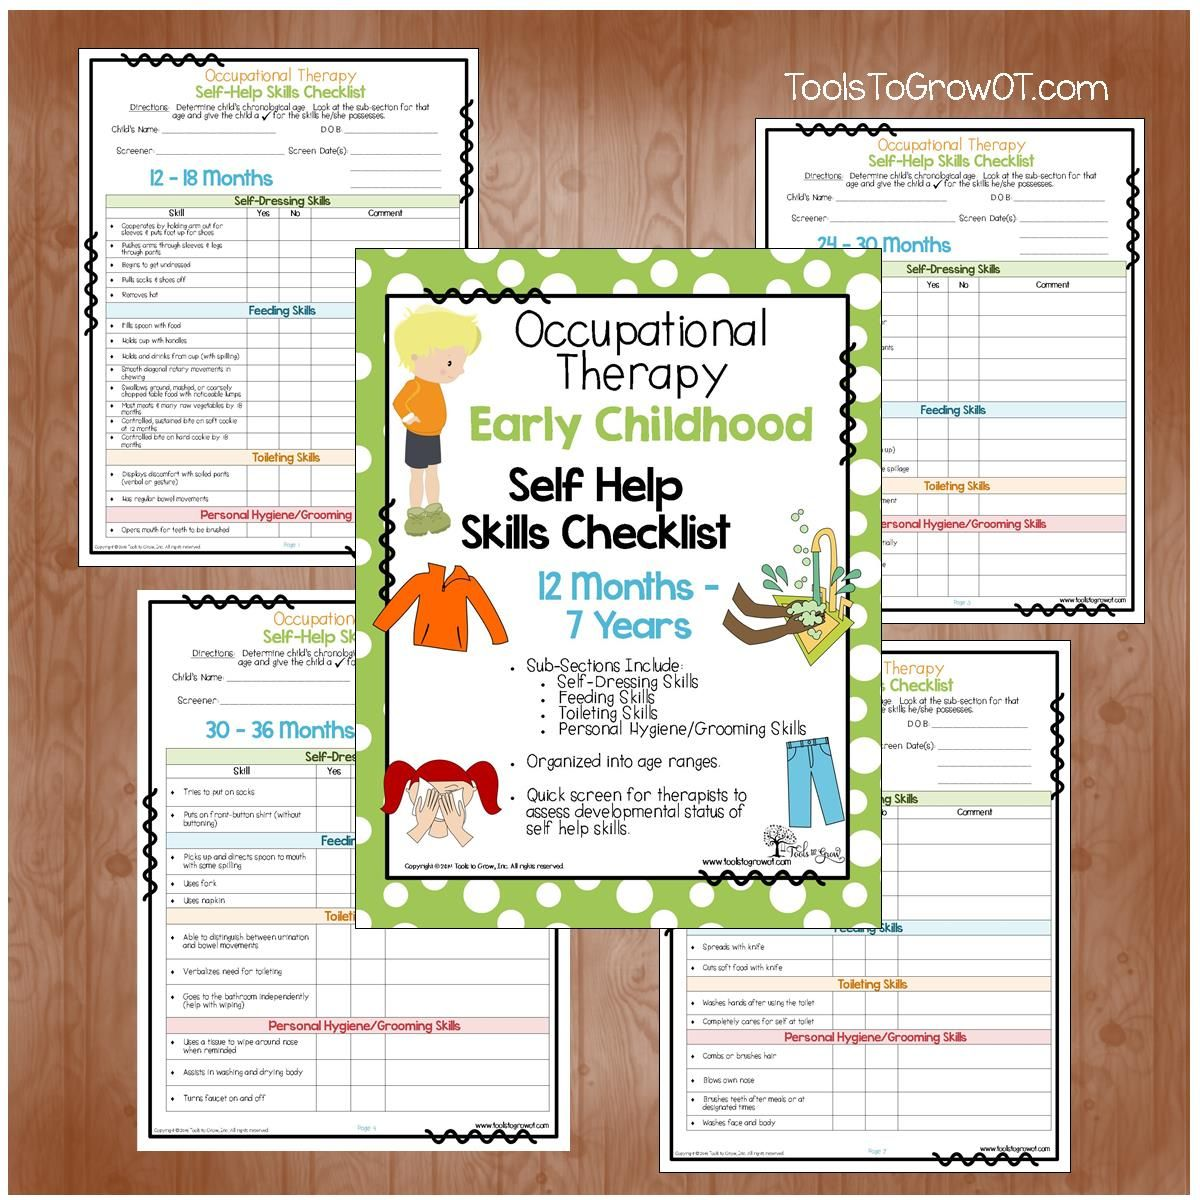 early childhood self help skills checklist quick screen for early childhood self help skills checklist quick screen for therapists to assess developmental status of